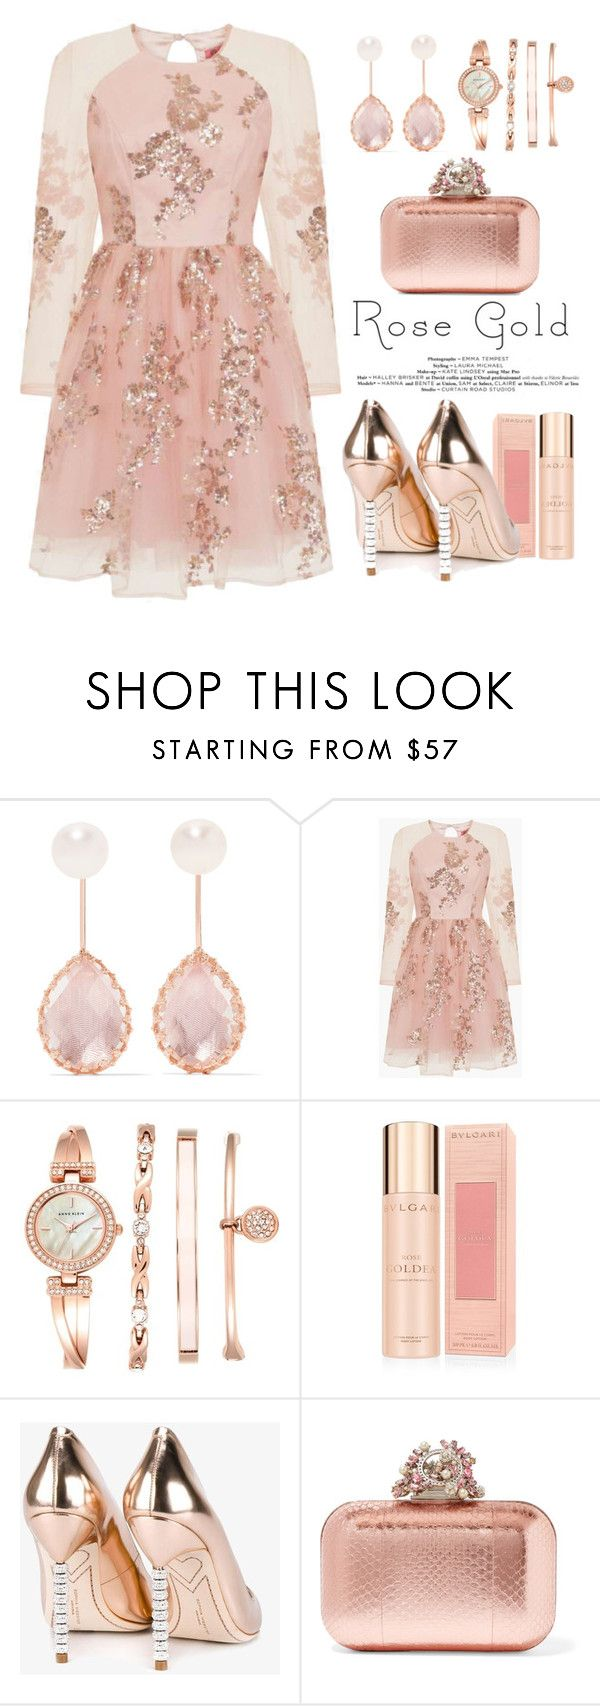 """Rose Gold"" by conch-lady ❤ liked on Polyvore featuring Larkspur & Hawk, Chi Chi, Anne Klein, Bulgari, Sophia Webster, Jimmy Choo and rosegold"